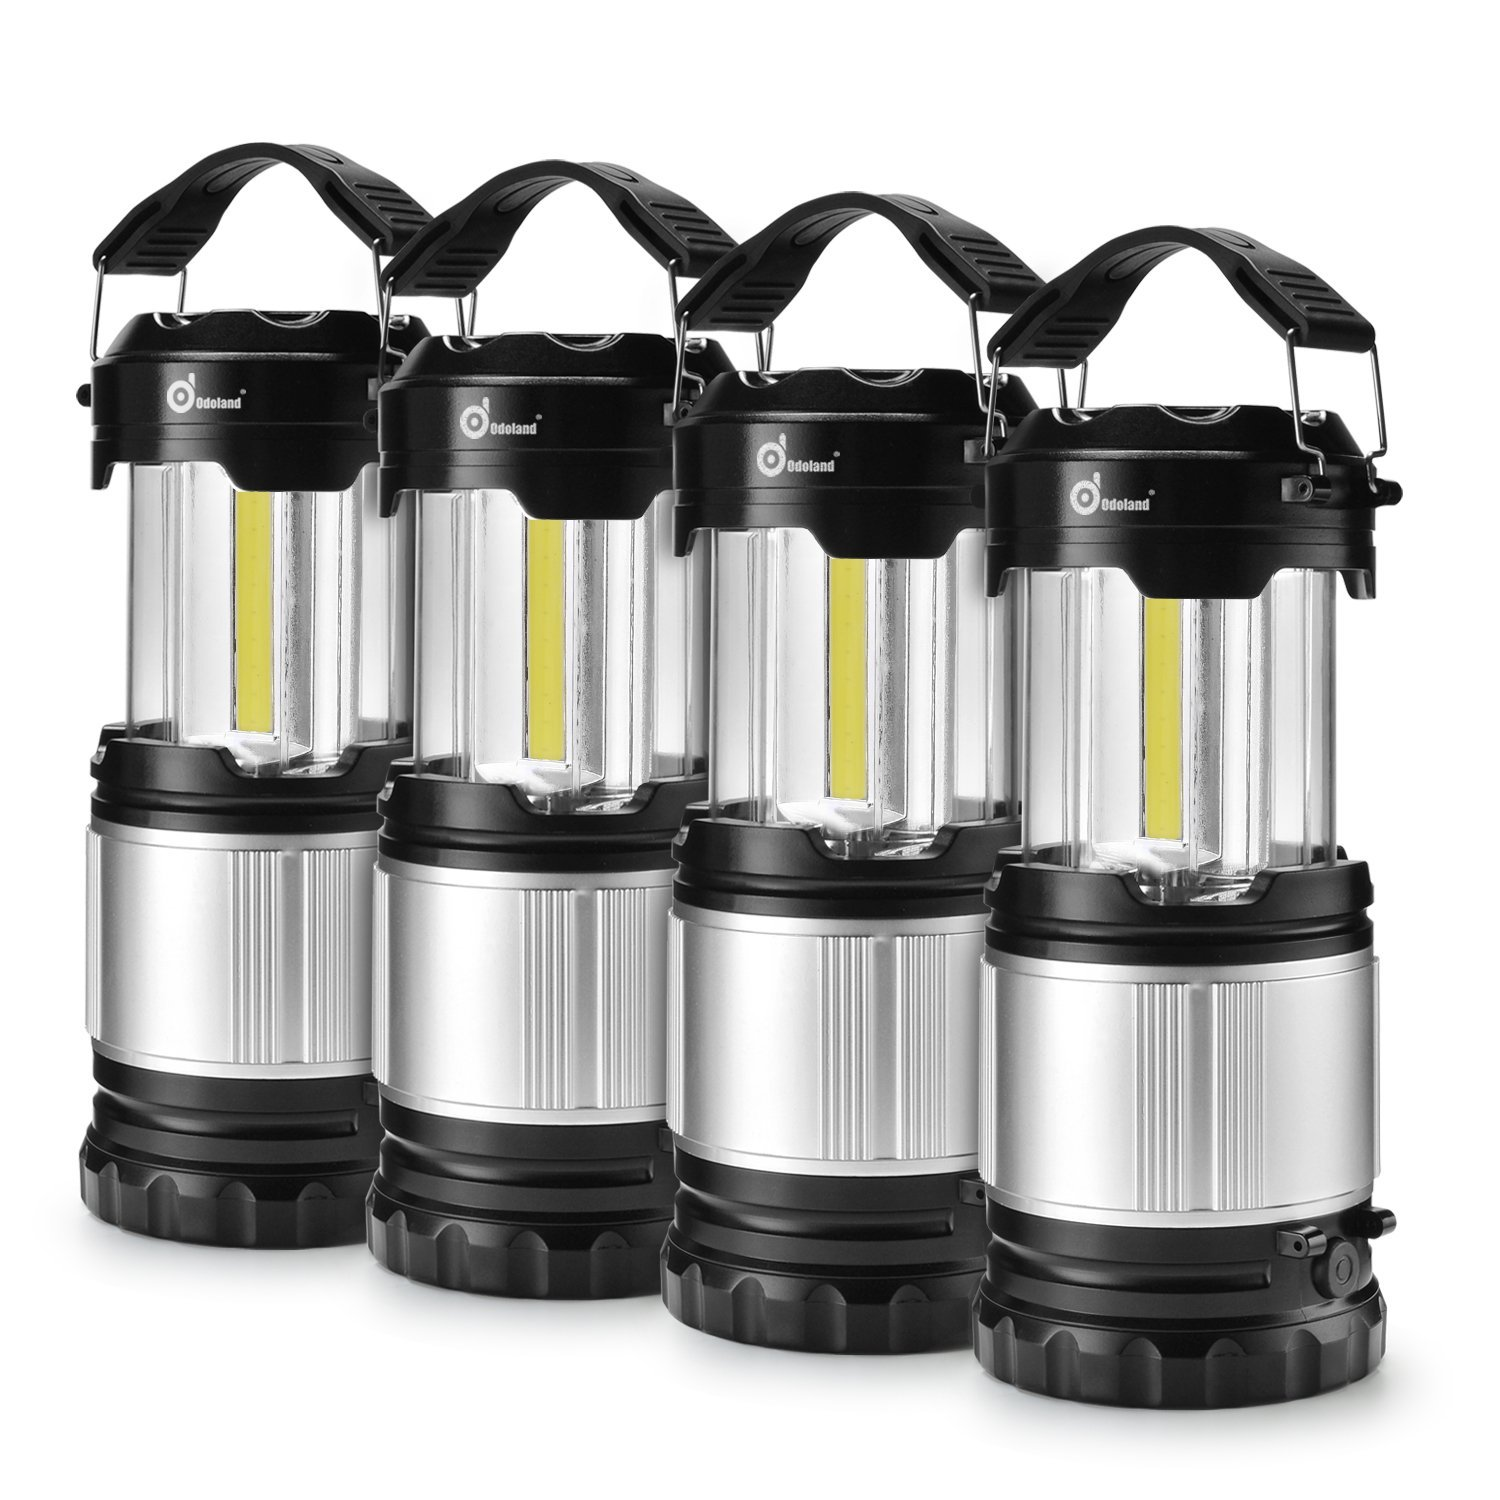 Odoland COB 4 Packs LED Lanterns, 300 Lumen LED Camping Lantern Handheld Flashlights, Camping Gear Equipment for Outdoor Hiking, Camping Supplies, Emergencies, Hurricanes, Outages